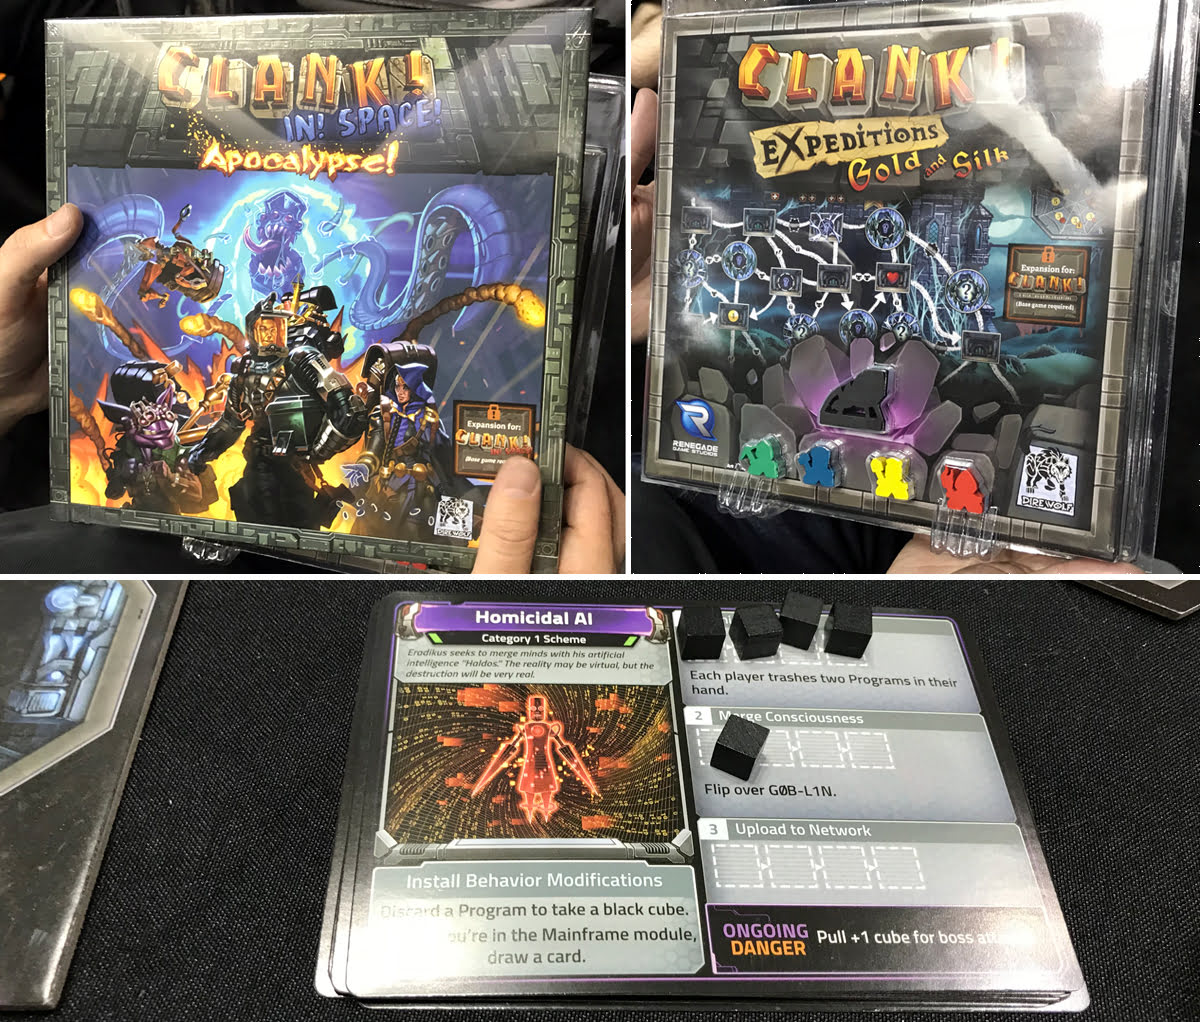 Clank! expansions